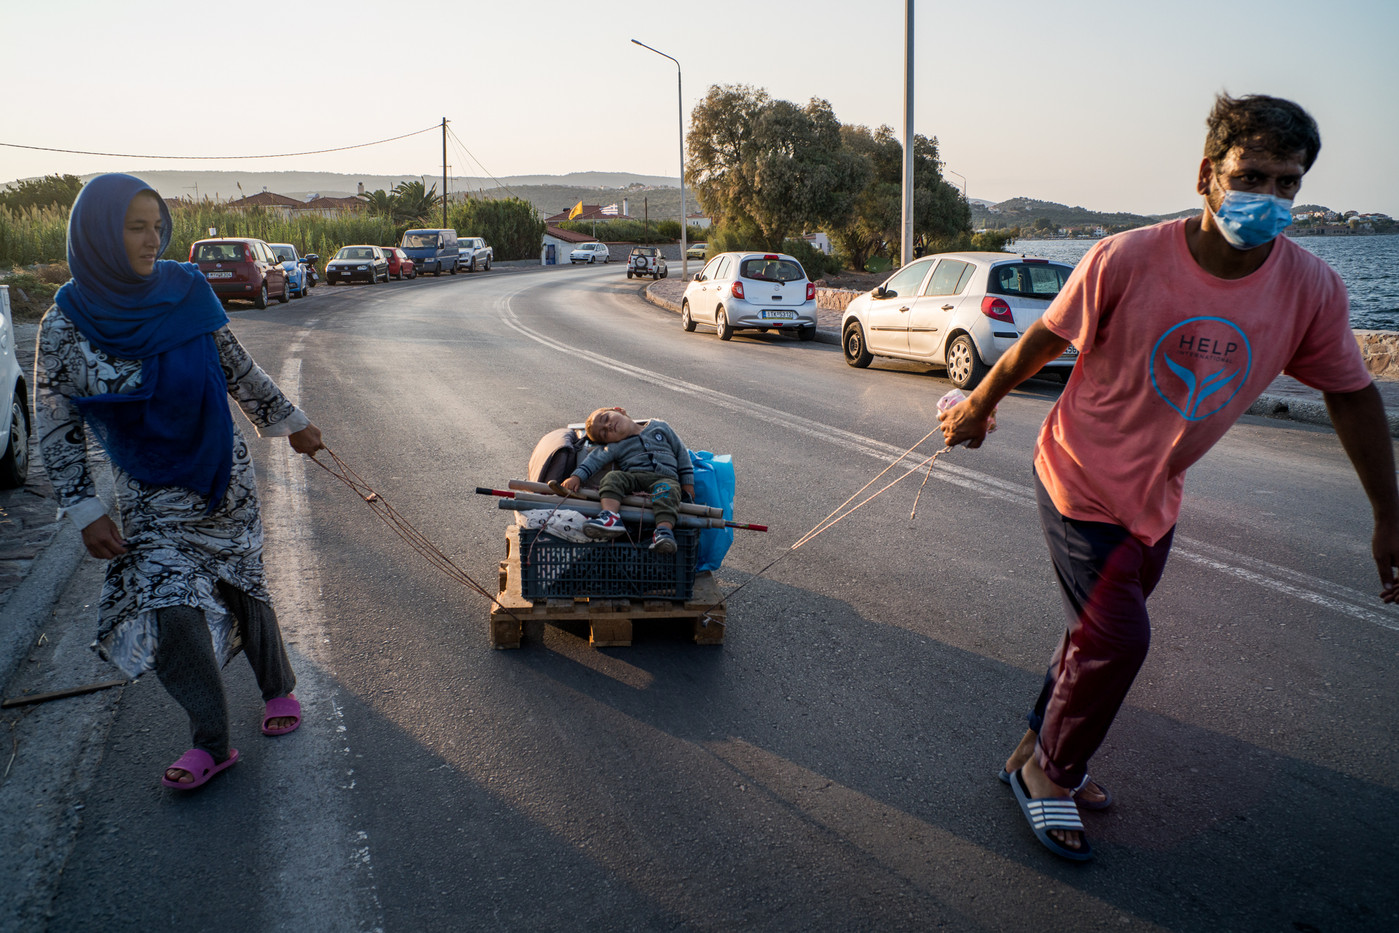 Moha, born in Turkey, is carried by his parents on the way to Kara-tepe.  Hundreds of families made homemade wagons with all kinds of material that remained without being destroyed from fire.